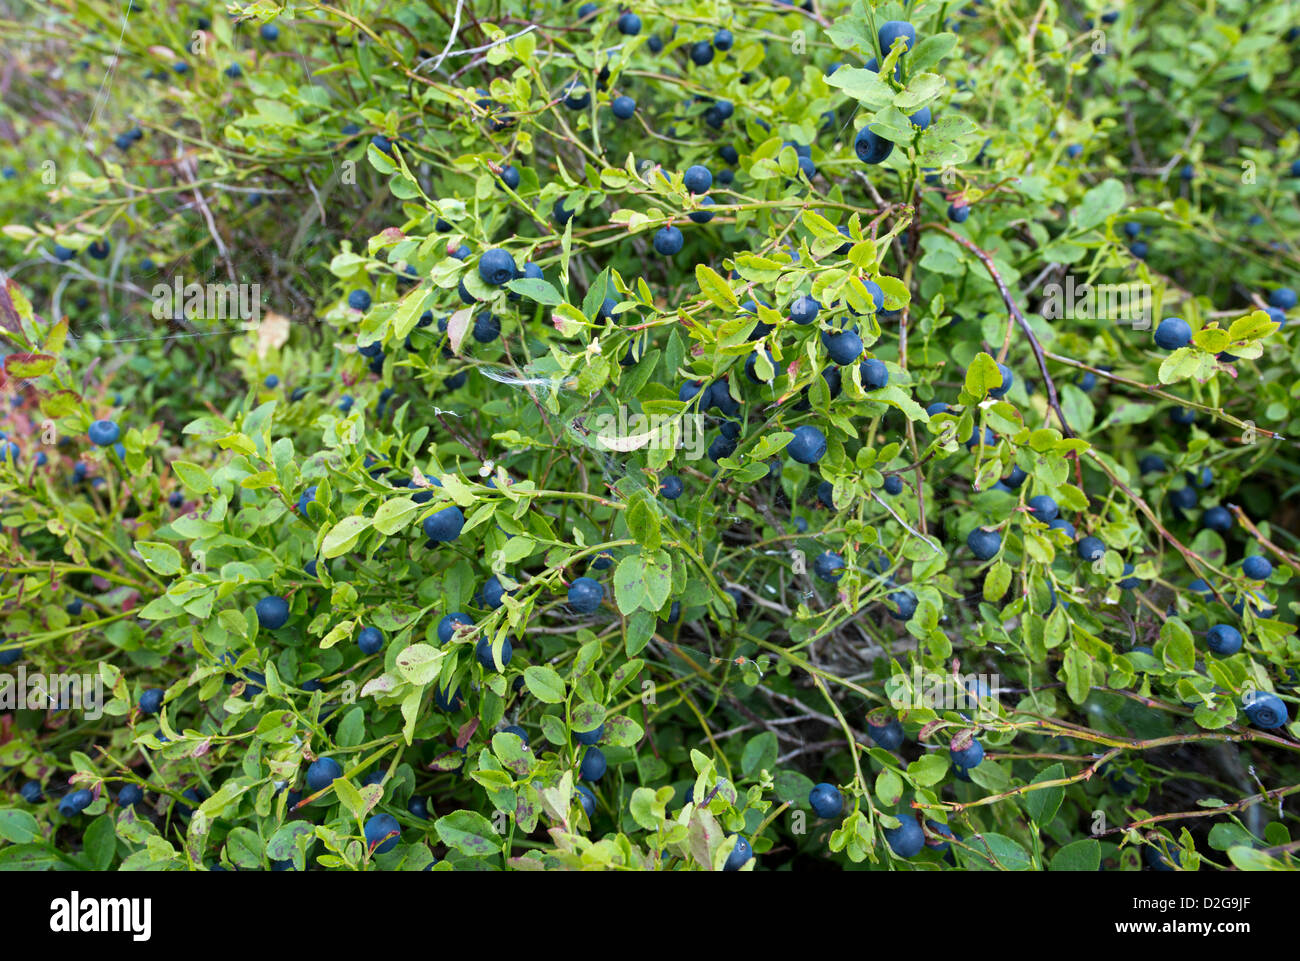 Wild blueberry underbrush with ripe blueberries (  Vaccinium myrtillus  ) , Finland - Stock Image